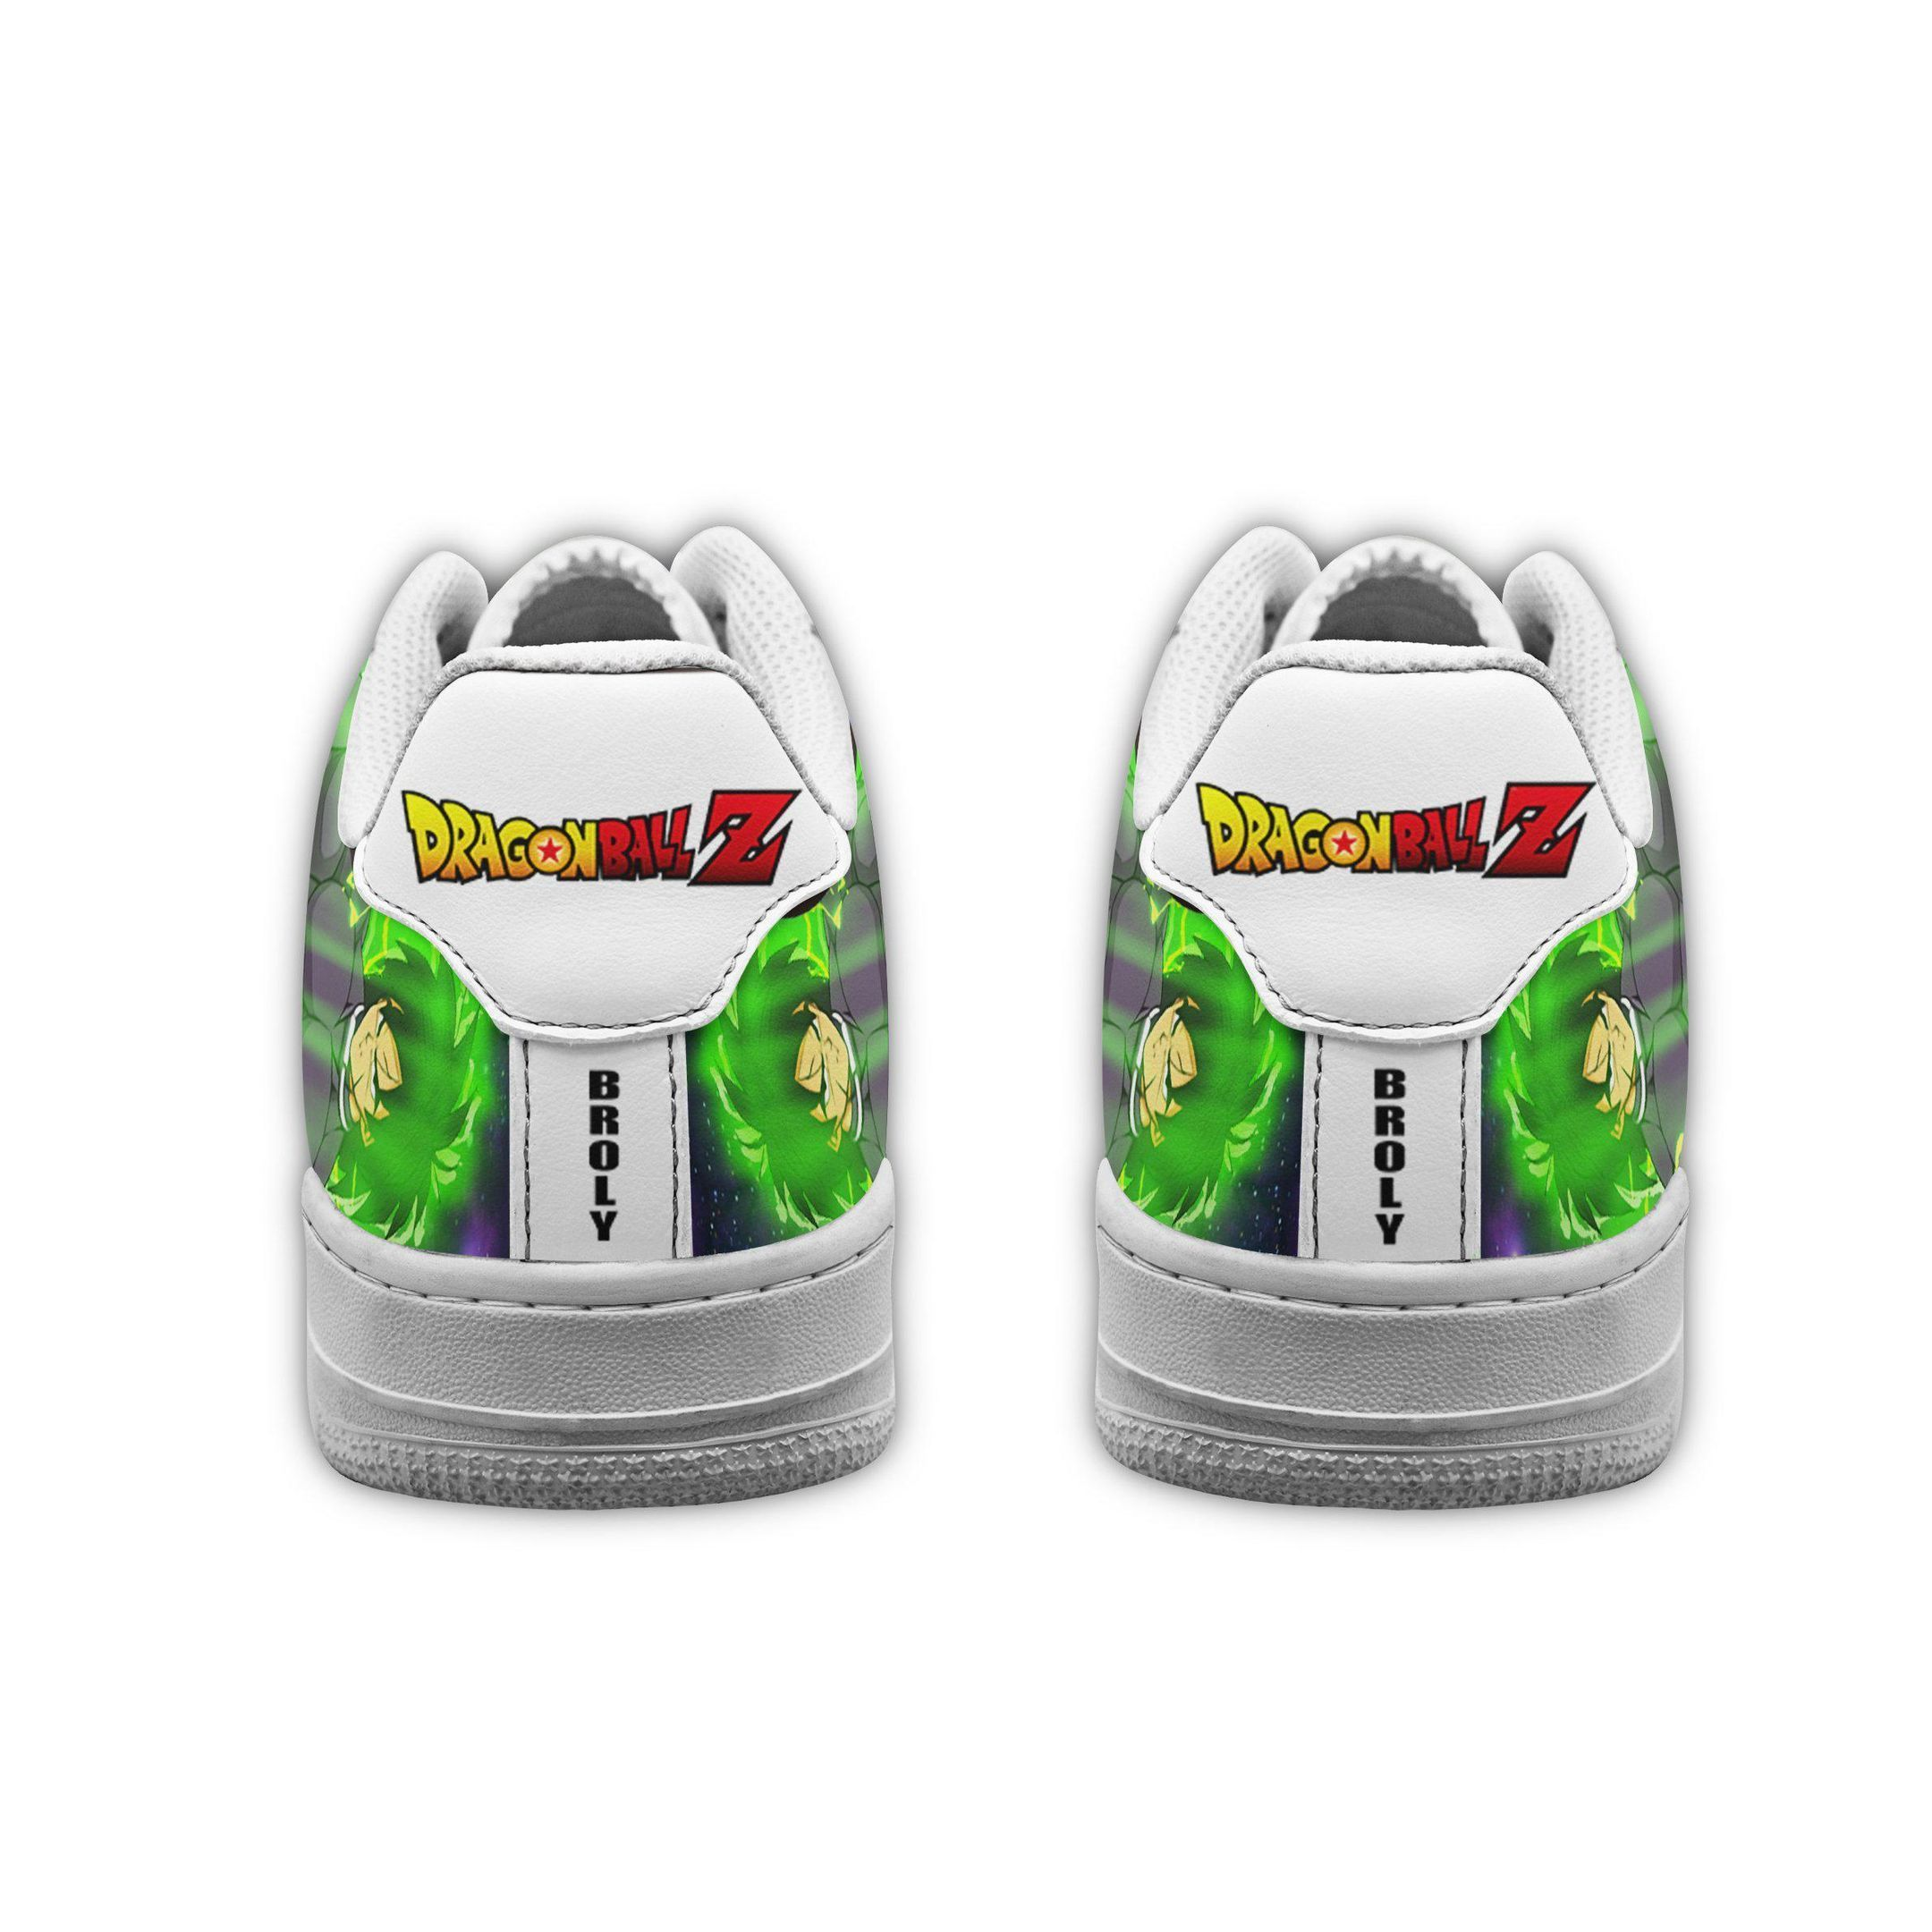 Broly Air Shoes Dragon Ball Z Anime Shoes Fan Gift GO1012